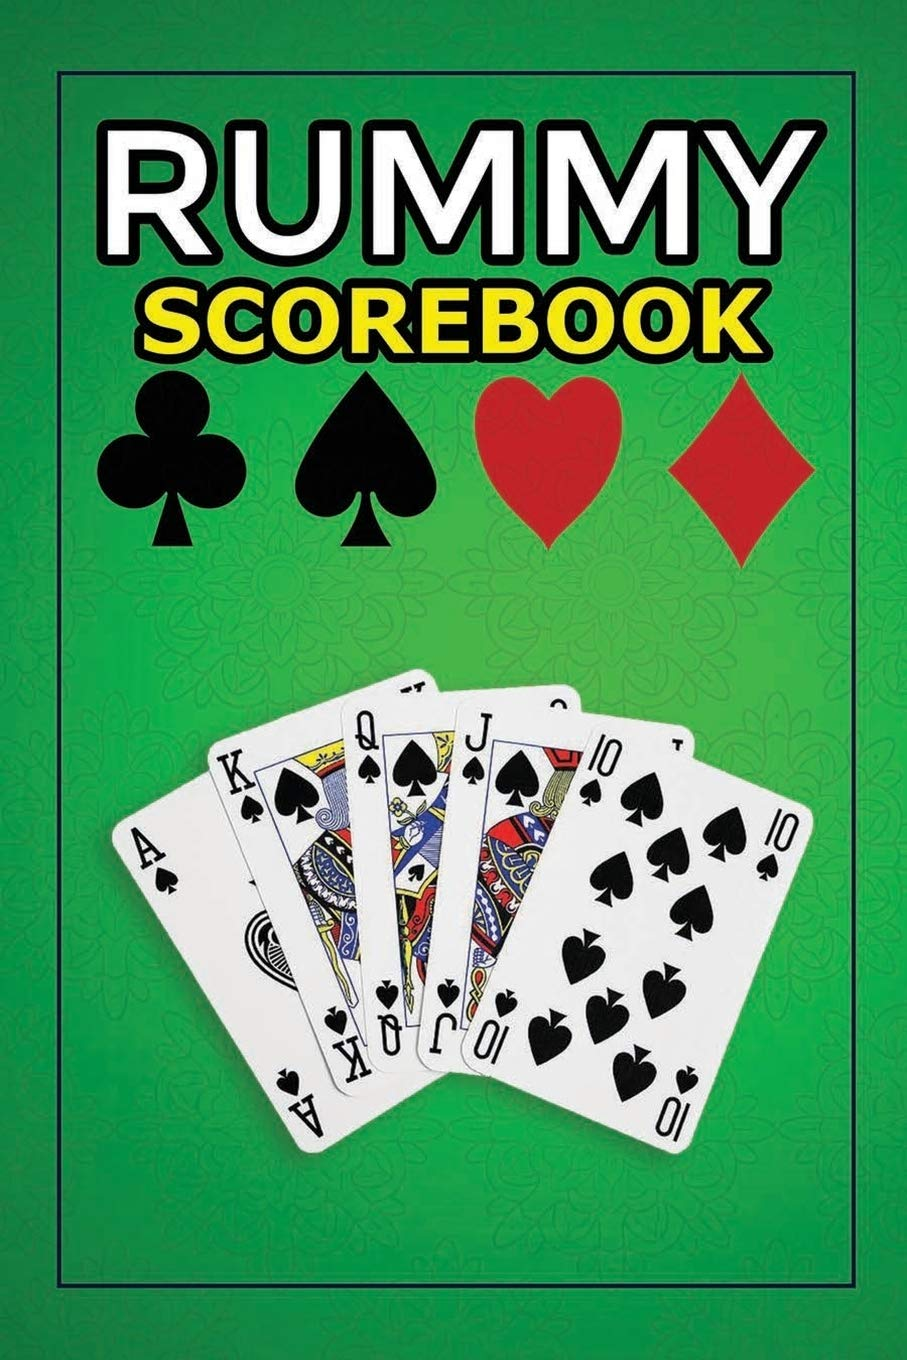 Rummy Score Book 120 Pages Keep Track Of Scoring Card Games Gin Rummy Card Game Sheets Note Book Perfect For Scorekeeping Notebooks Rummy 9781653209866 Amazon Com Books